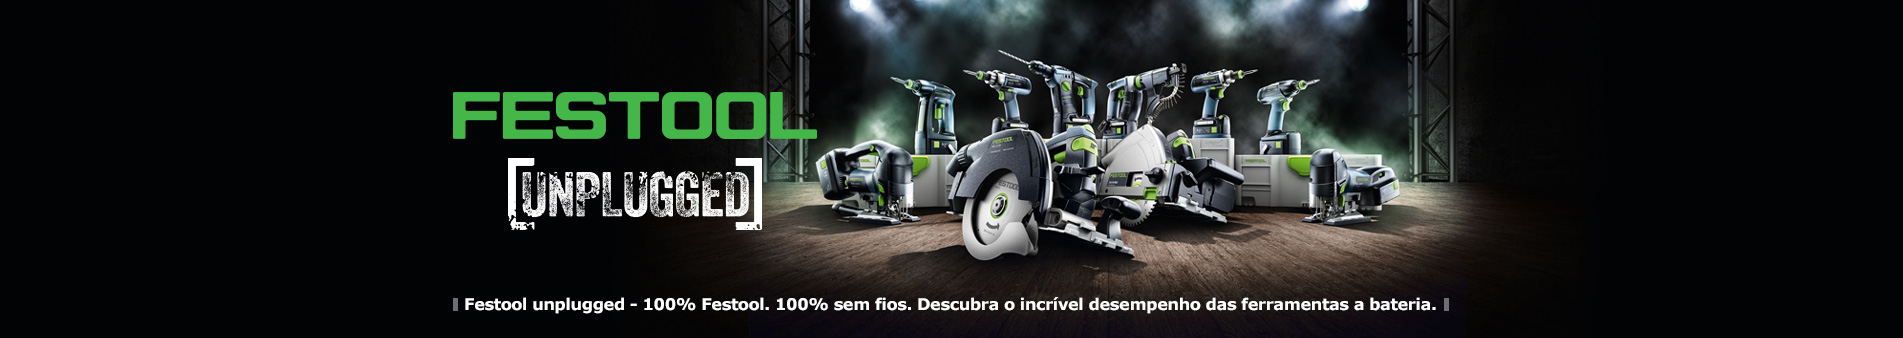 BANNER-Festool-Unplugged